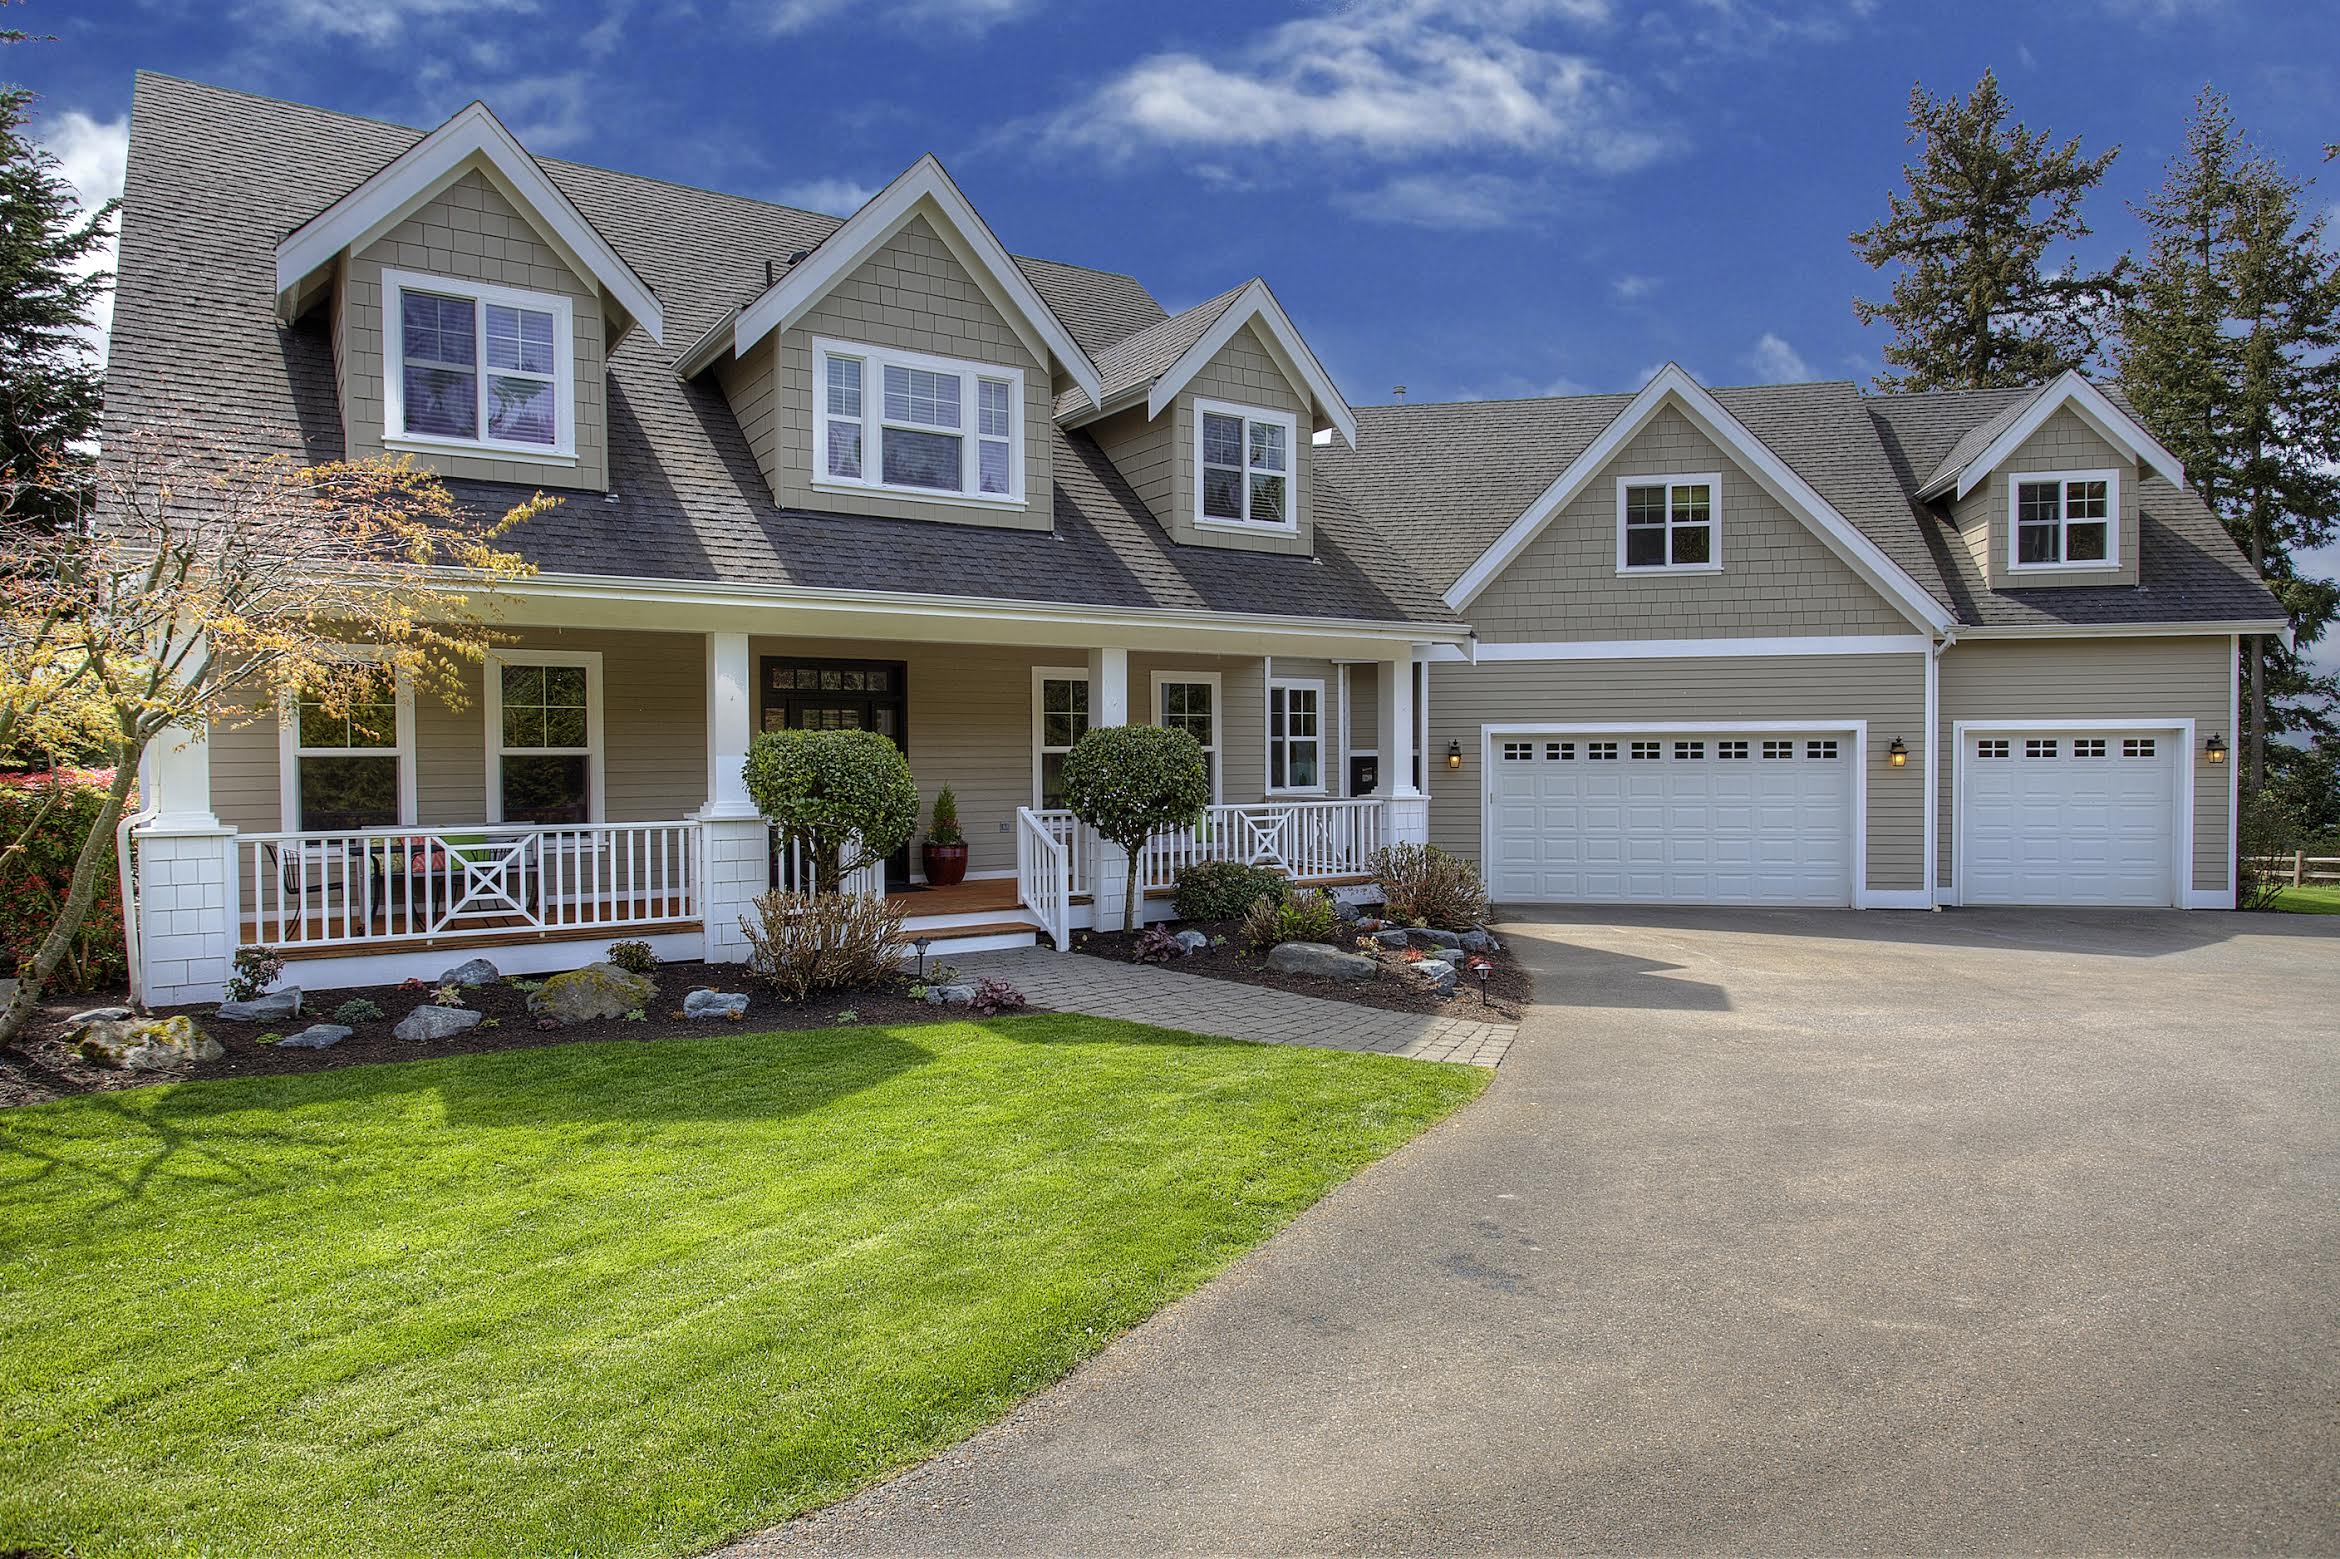 Gig Harbor Real Estate >> Custom Built 5 Bedroom 4 Bath Masterpiece On 7 06 Acres In